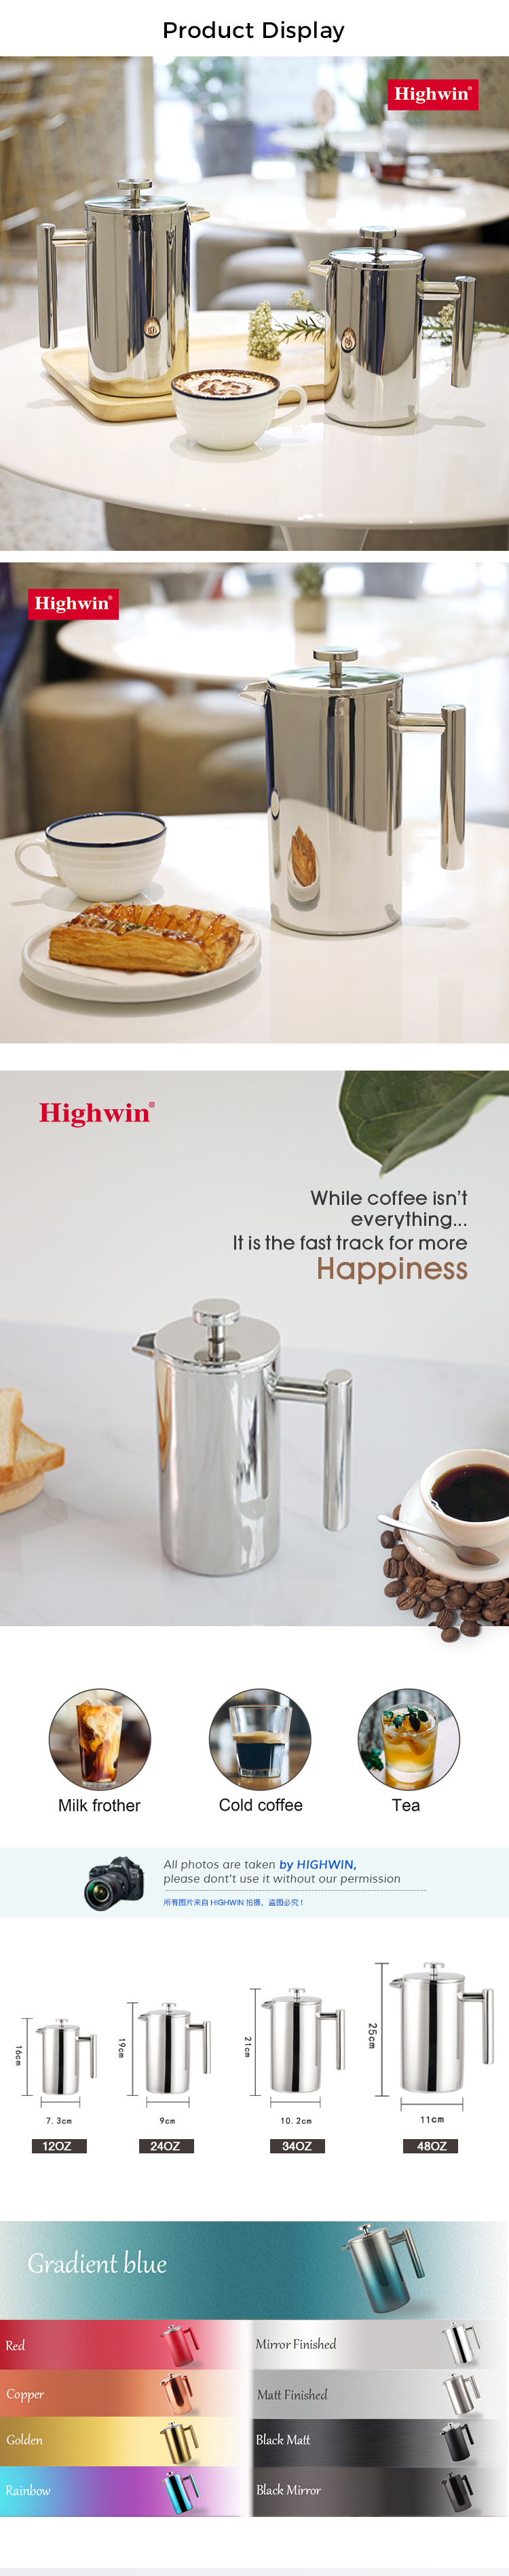 Highwin Factory 1000ml Double-Wall Stainless Steel Mirror French Press Coffee Maker